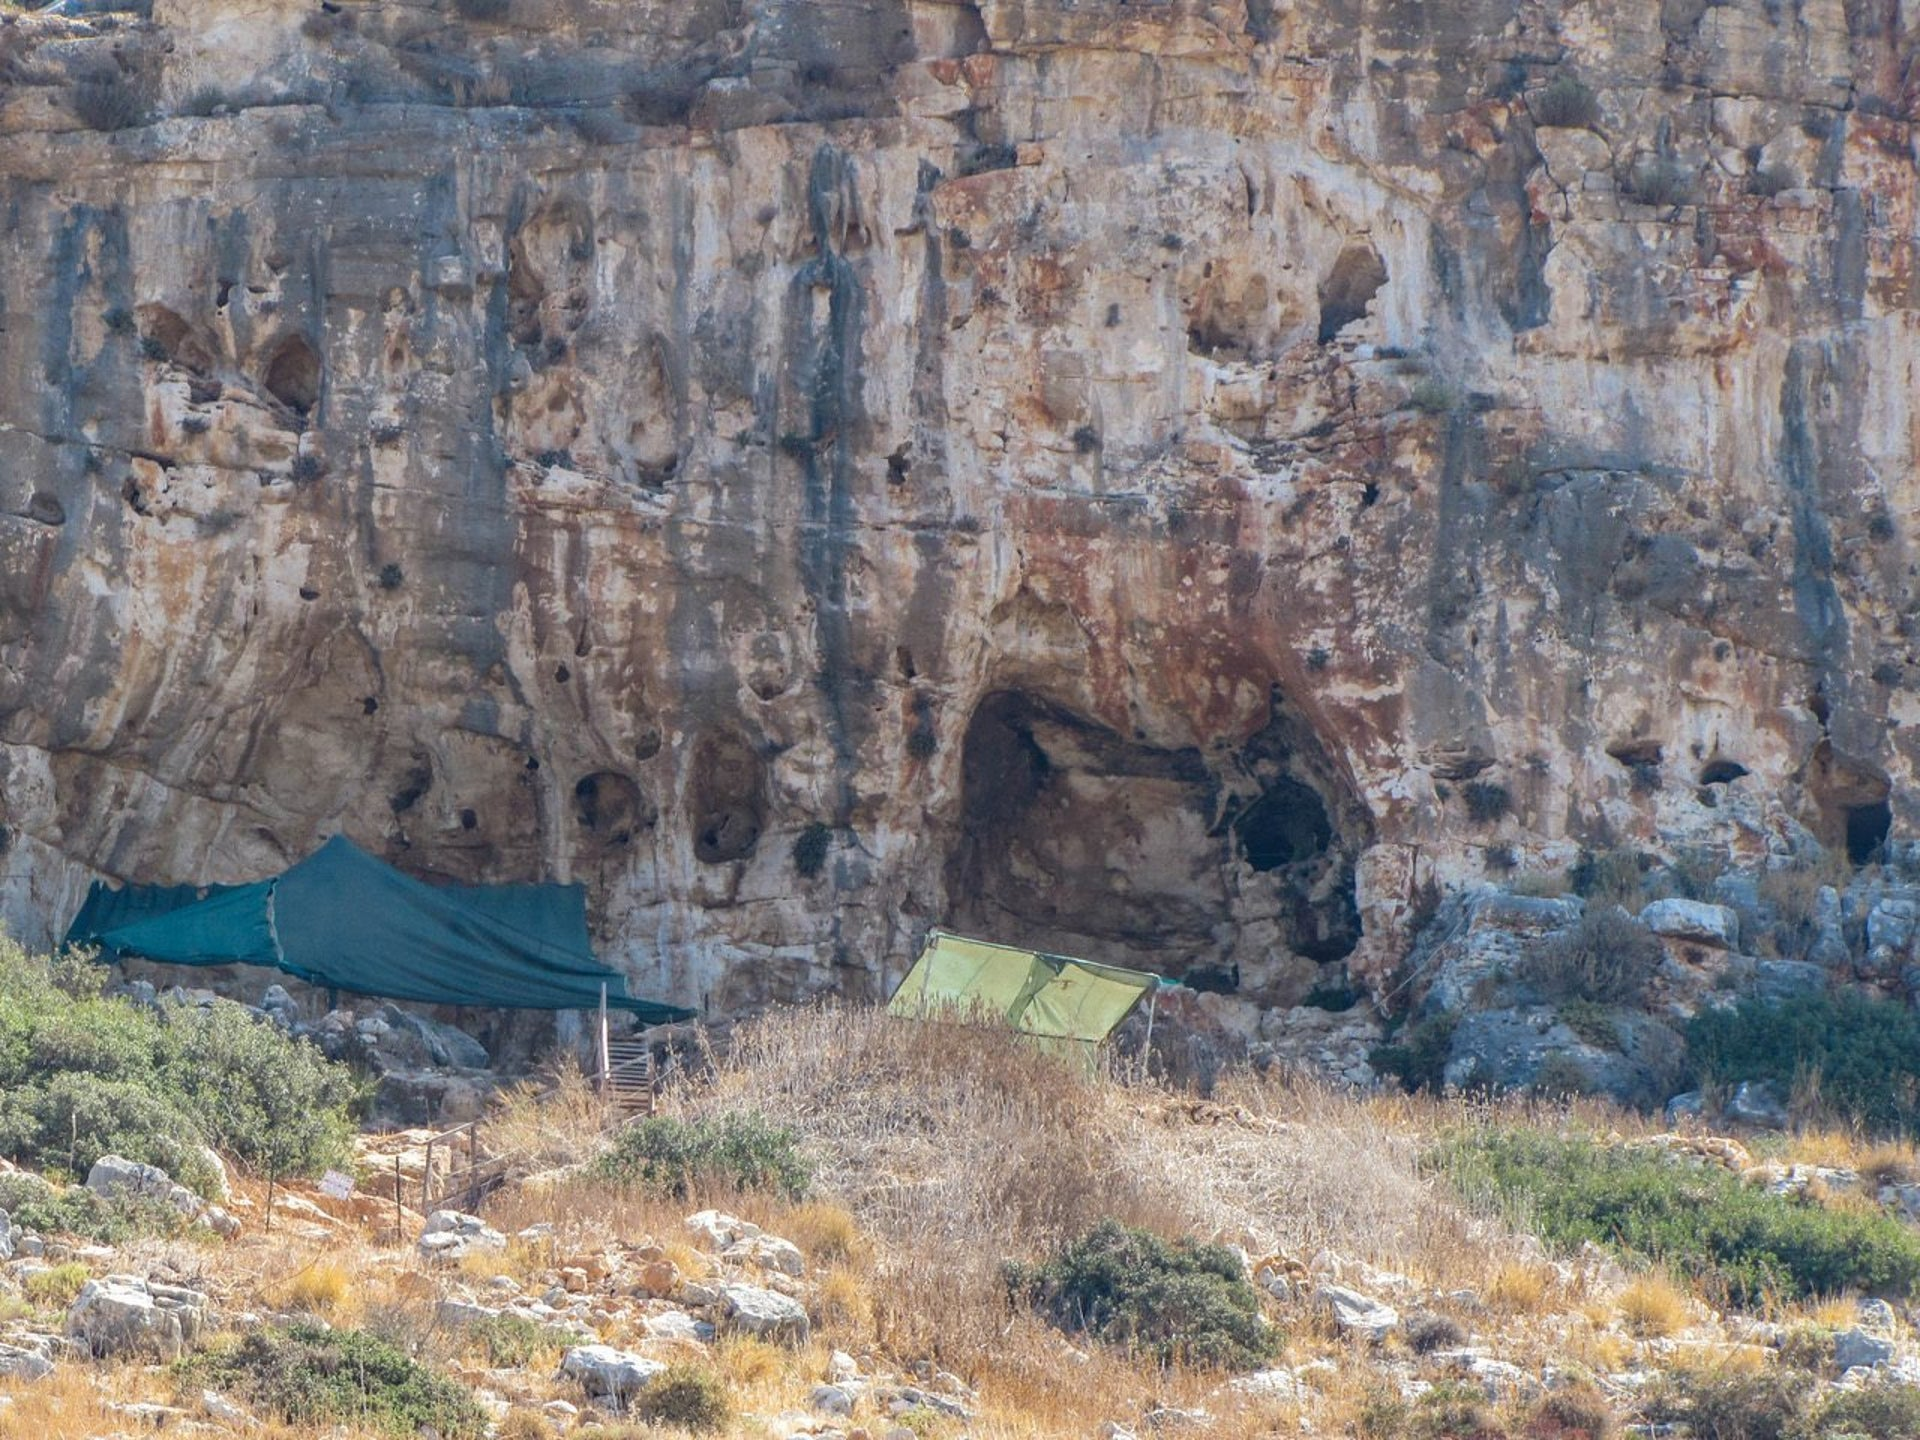 A view of Misliya cave, one of many prehistoric sites that dot the cliff of the Carmel mountain range, near the northern Israeli city of Haifa